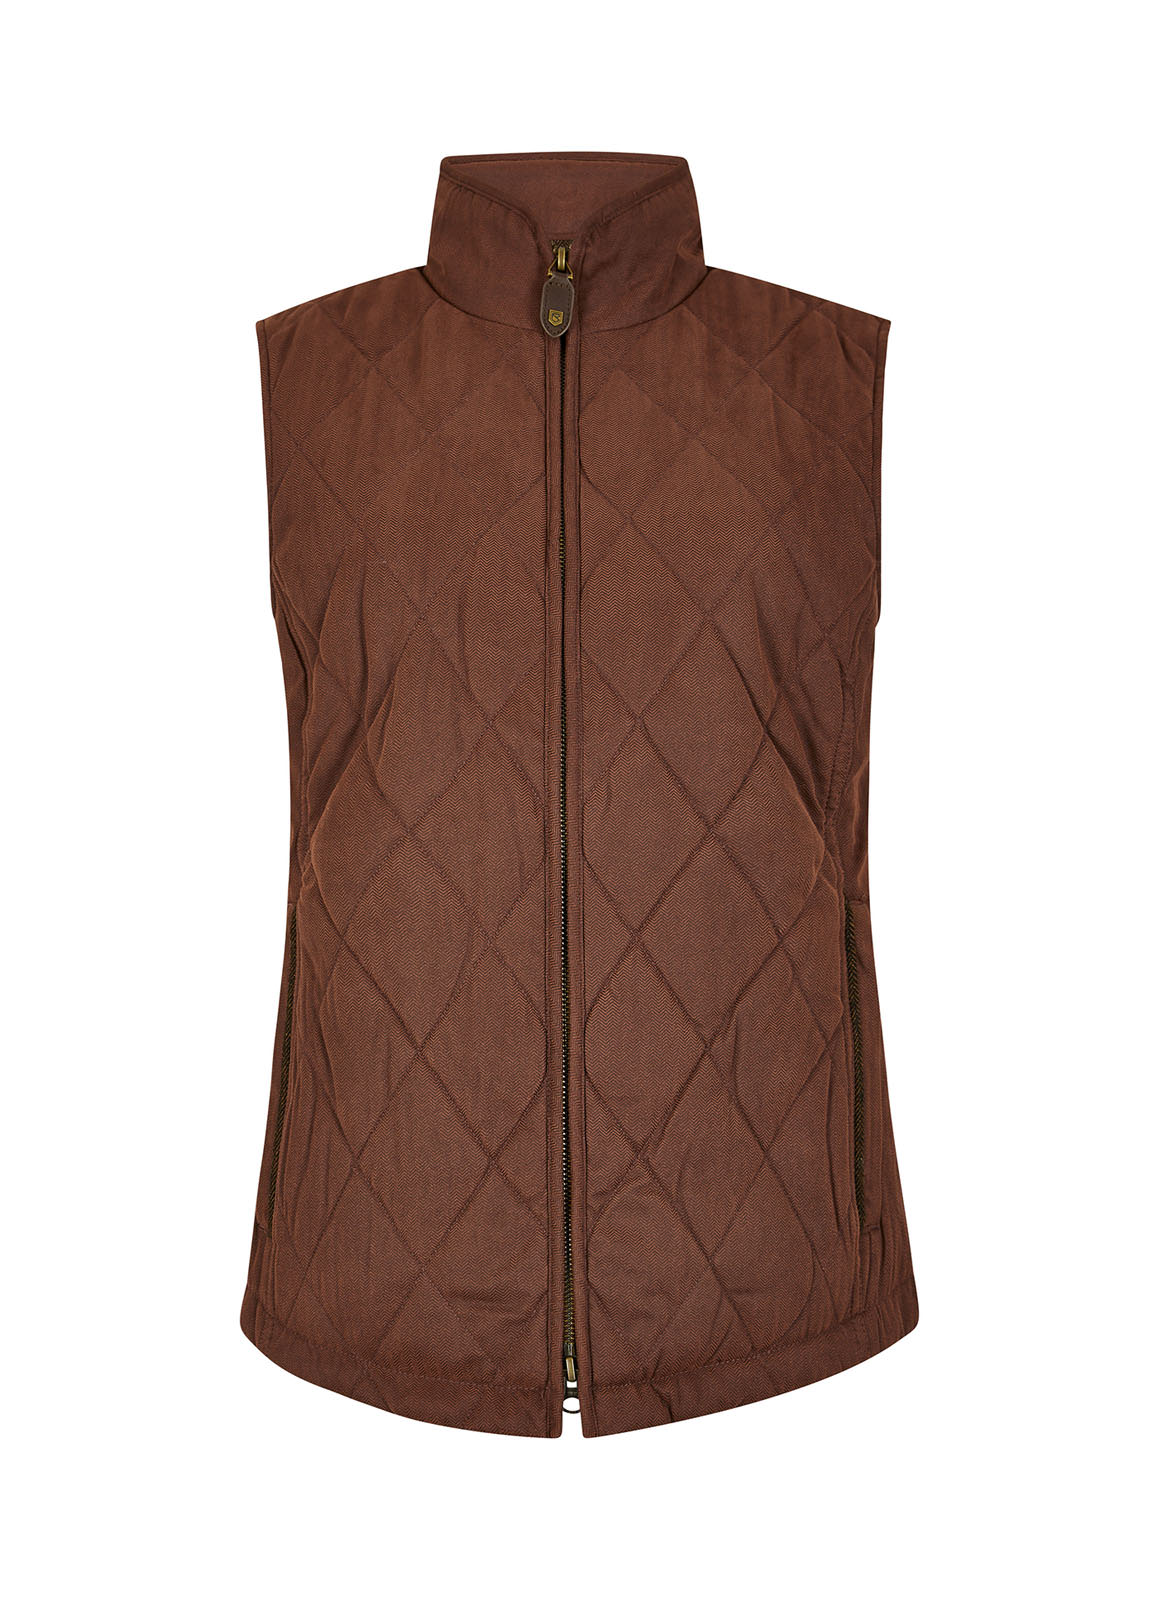 Dubarry_Callaghan Quilted Gilet - Russet_Image_2